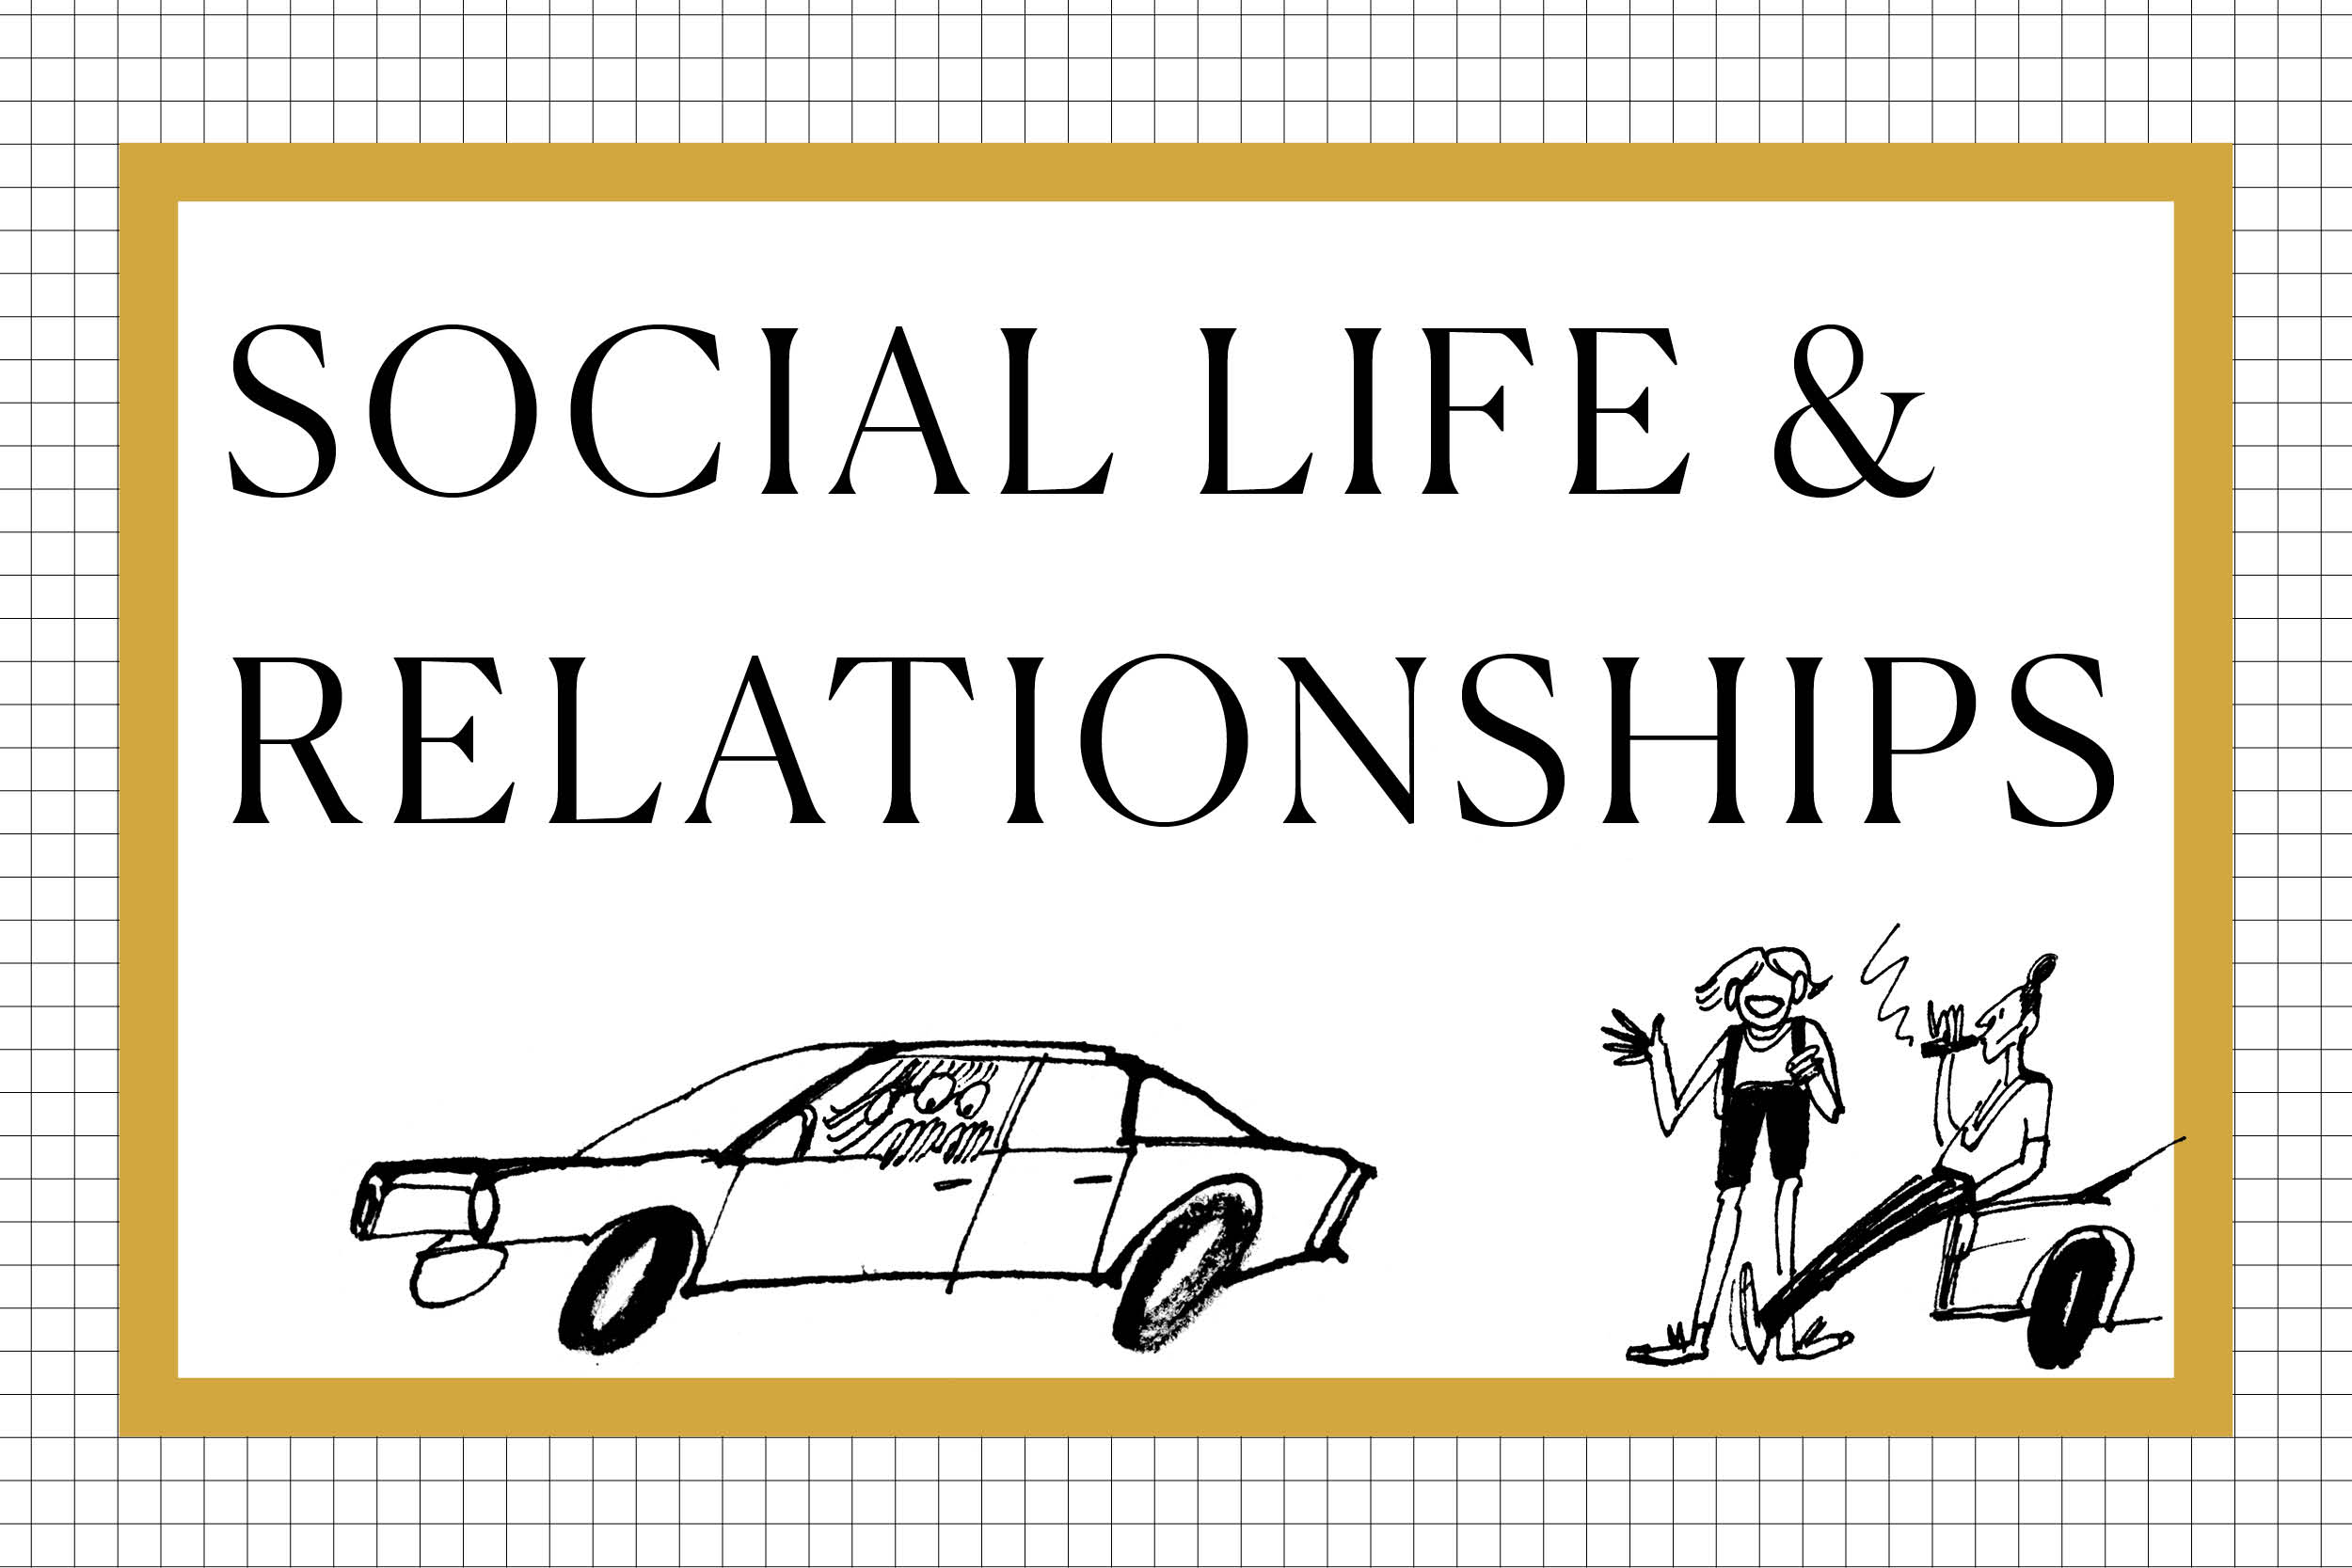 Social life and relationships 2019